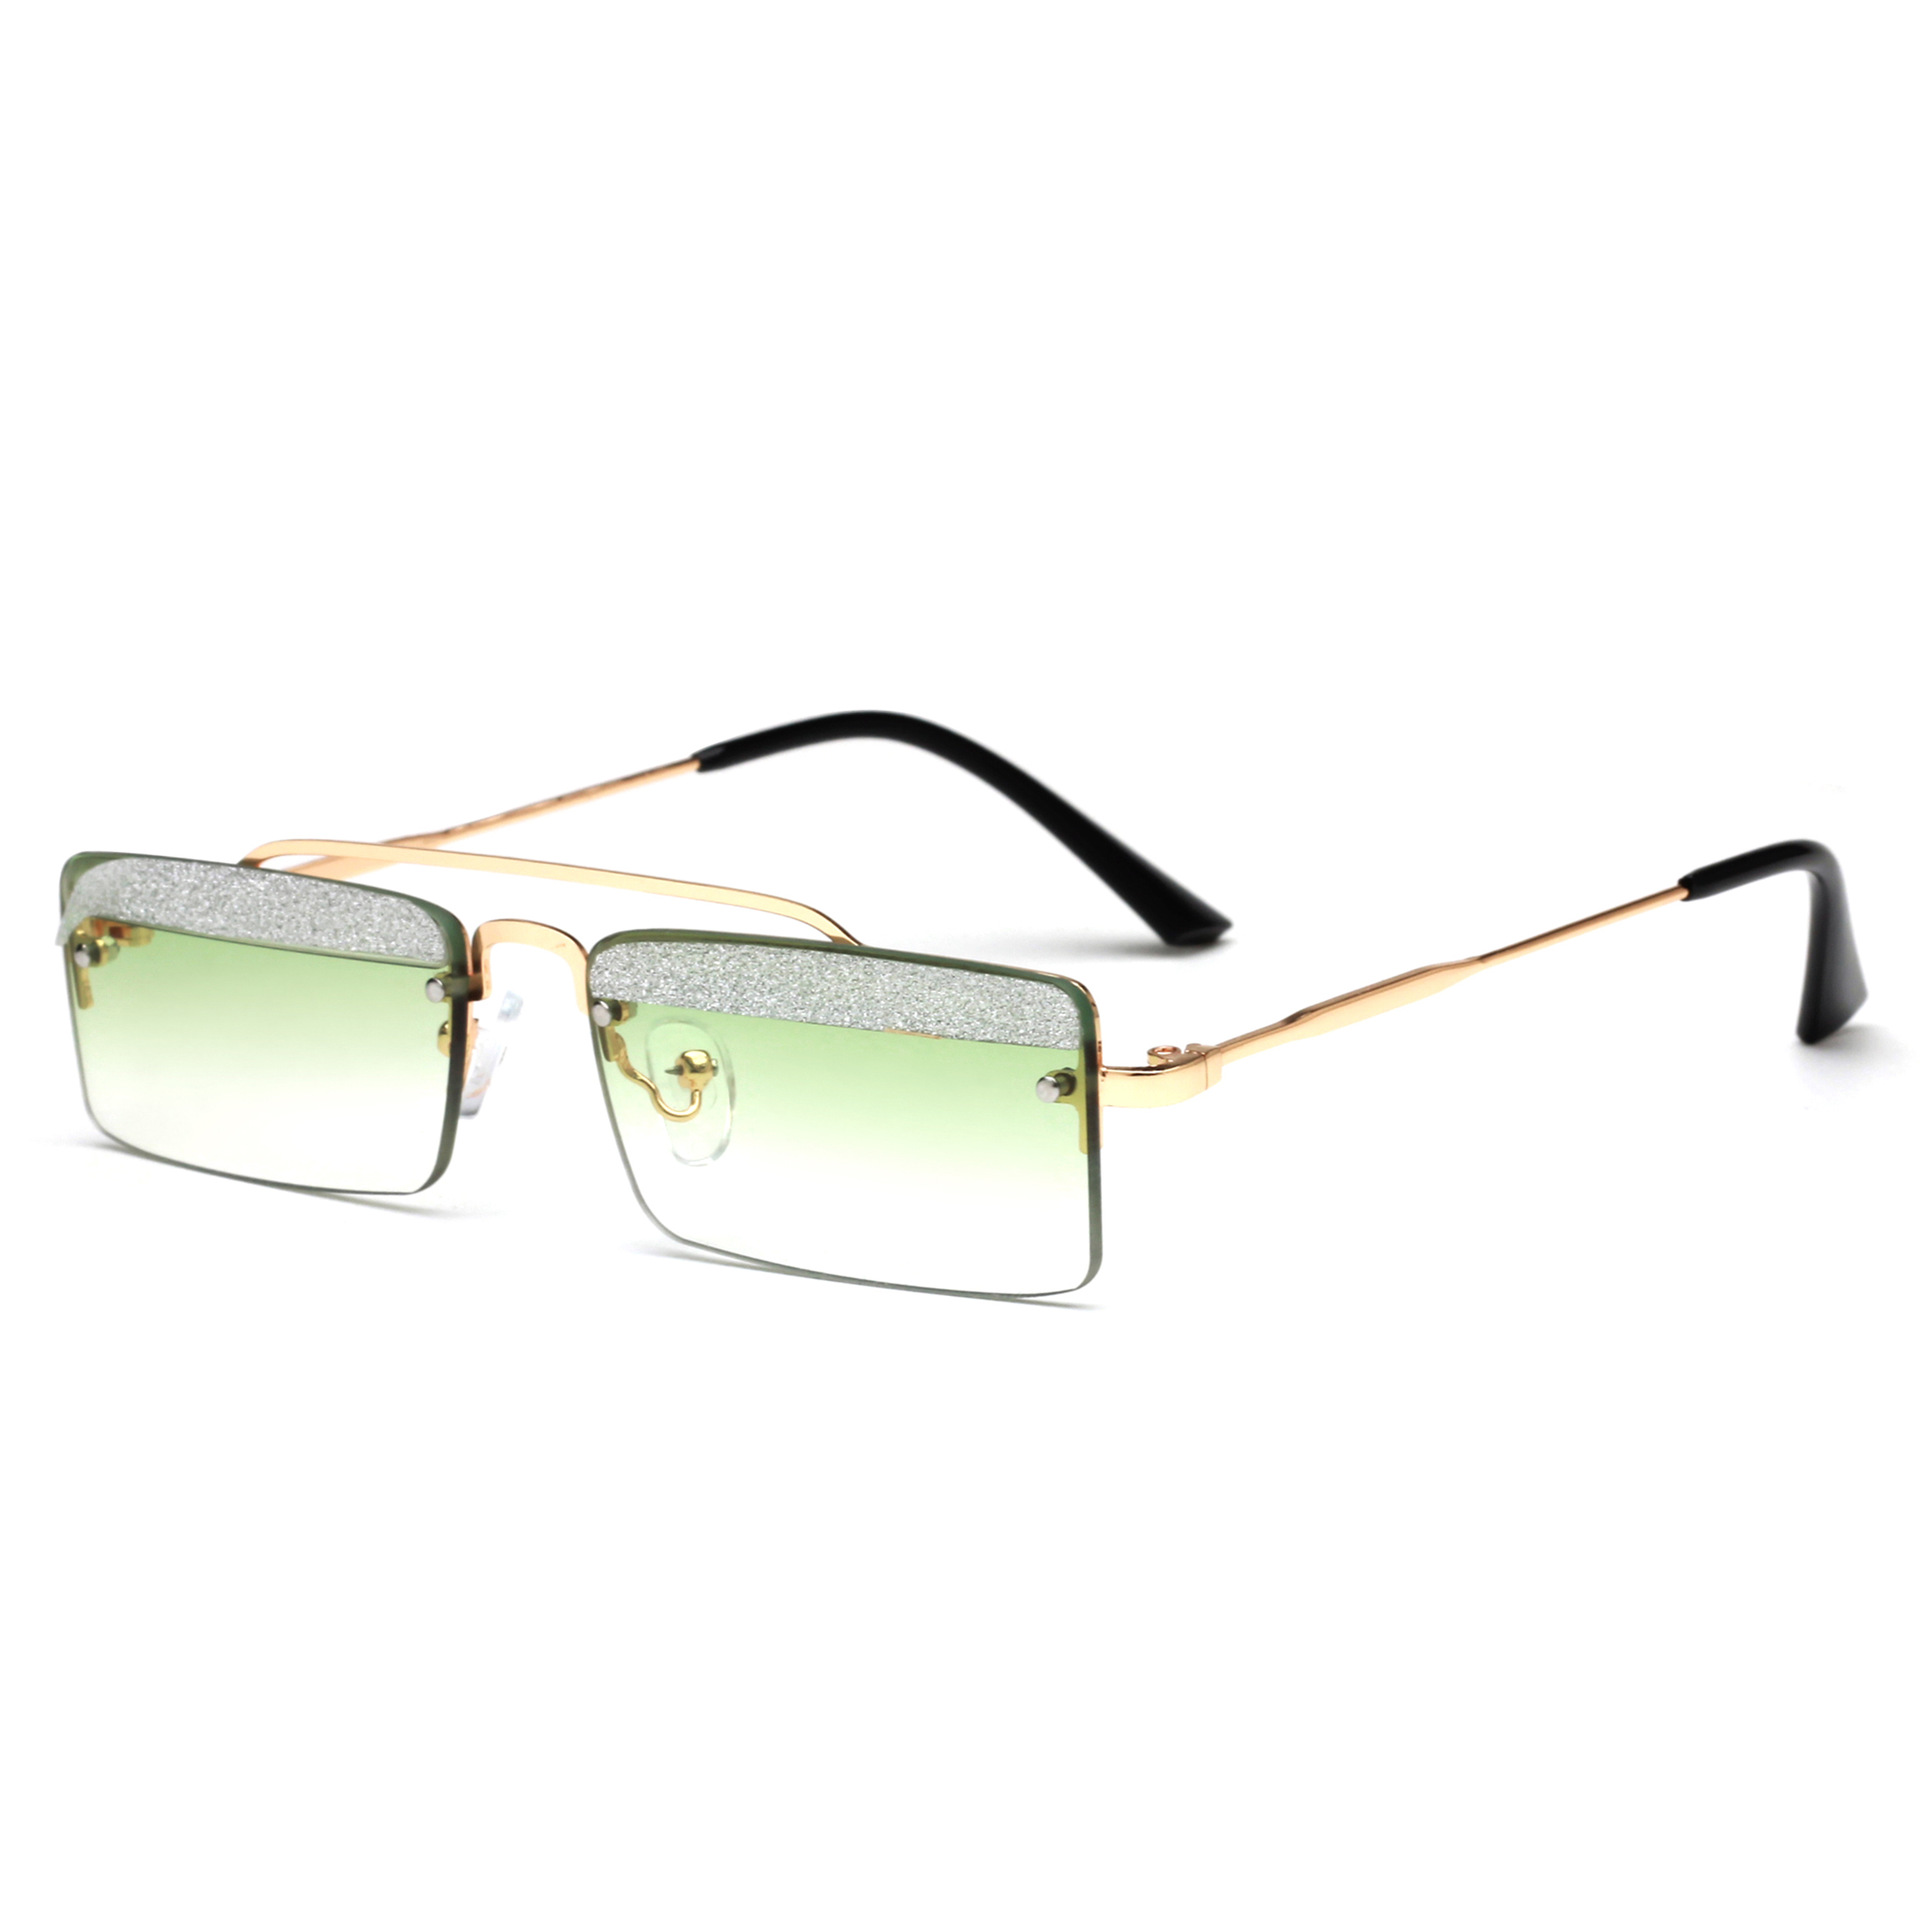 Ololo ou 1877 cross-border sun glasses European and American-style cool eyebrows small box glasses WOMEN'S <font><b>sunglasses</b></font> image